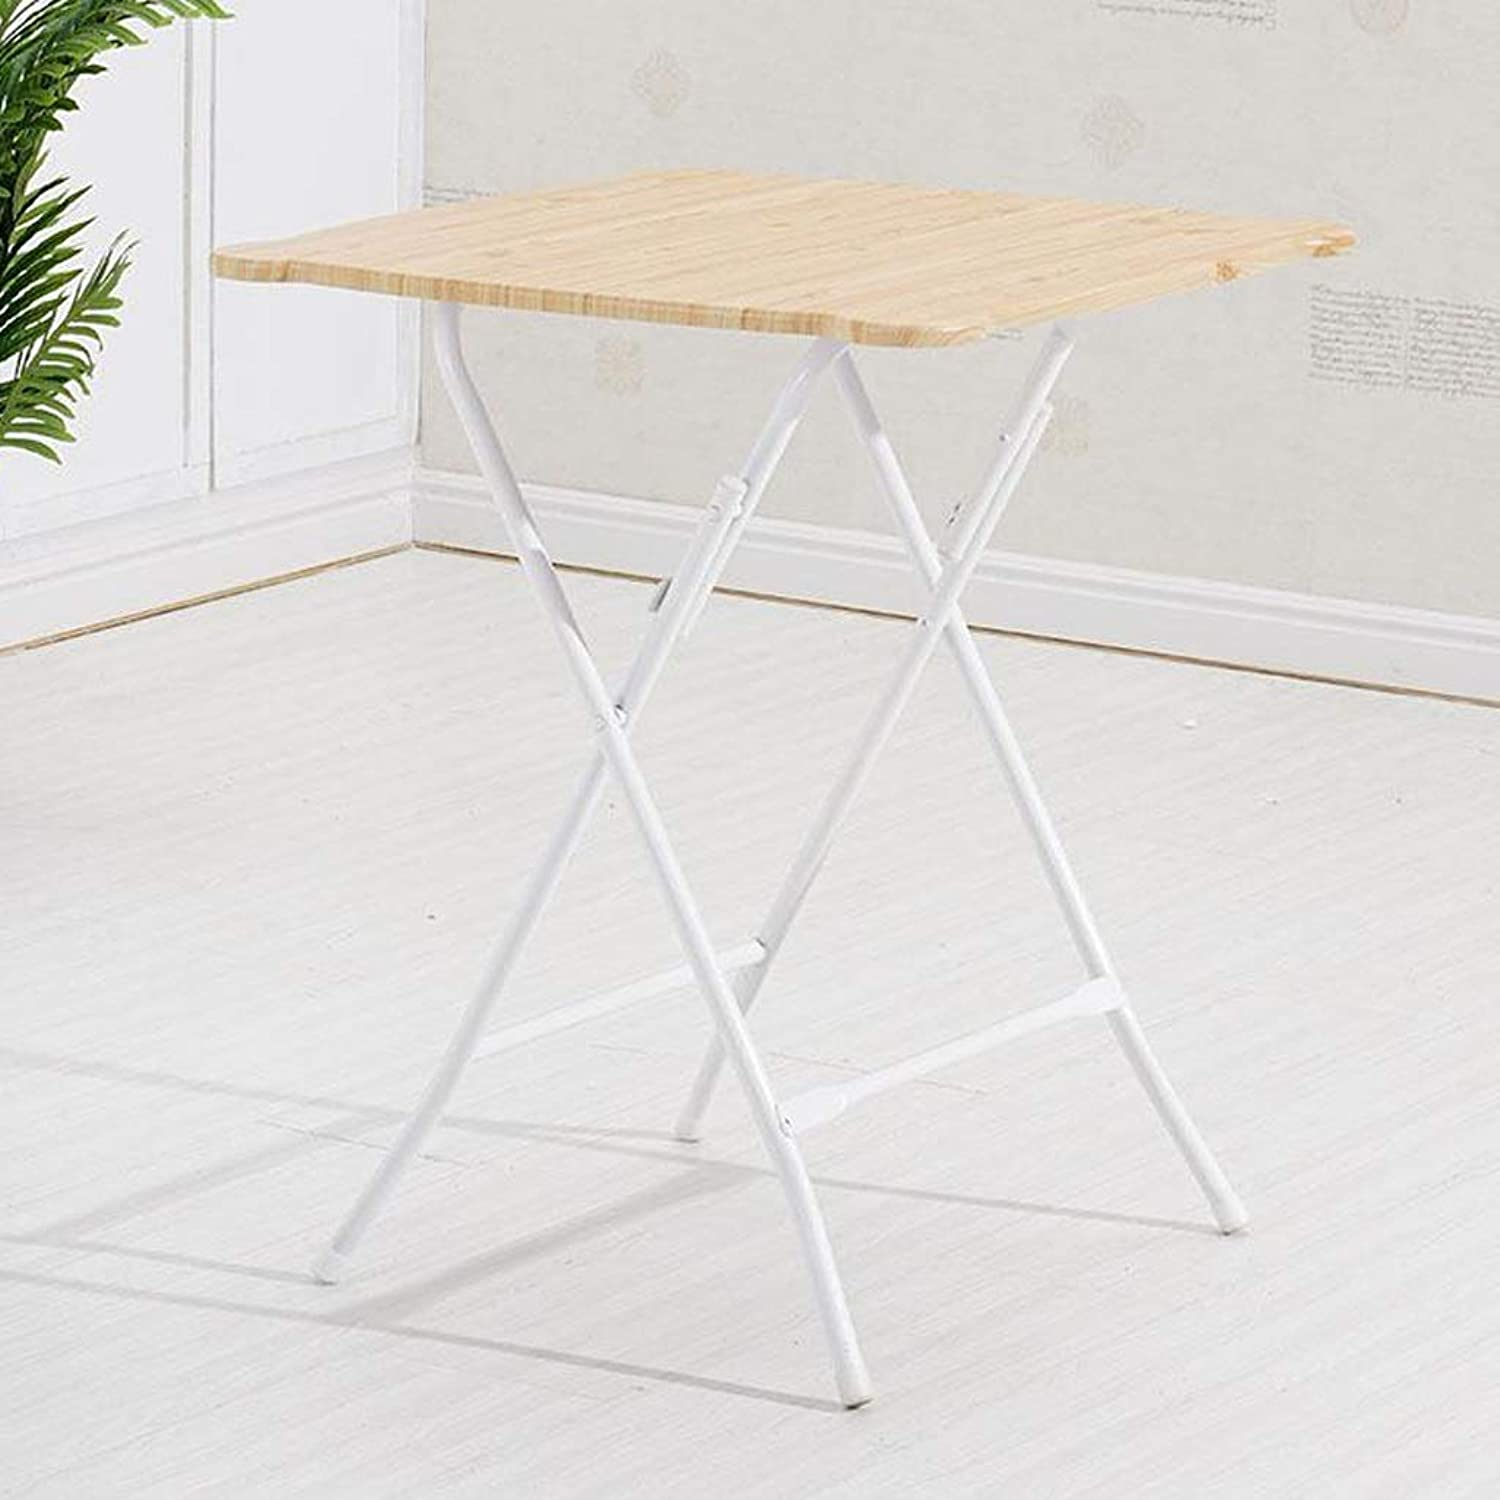 JSFQ Folding Table Dining Table Home Simple Small Apartment 2 People 4 People Portable Dining Table Square Round Small Table Folding Table (color   D)